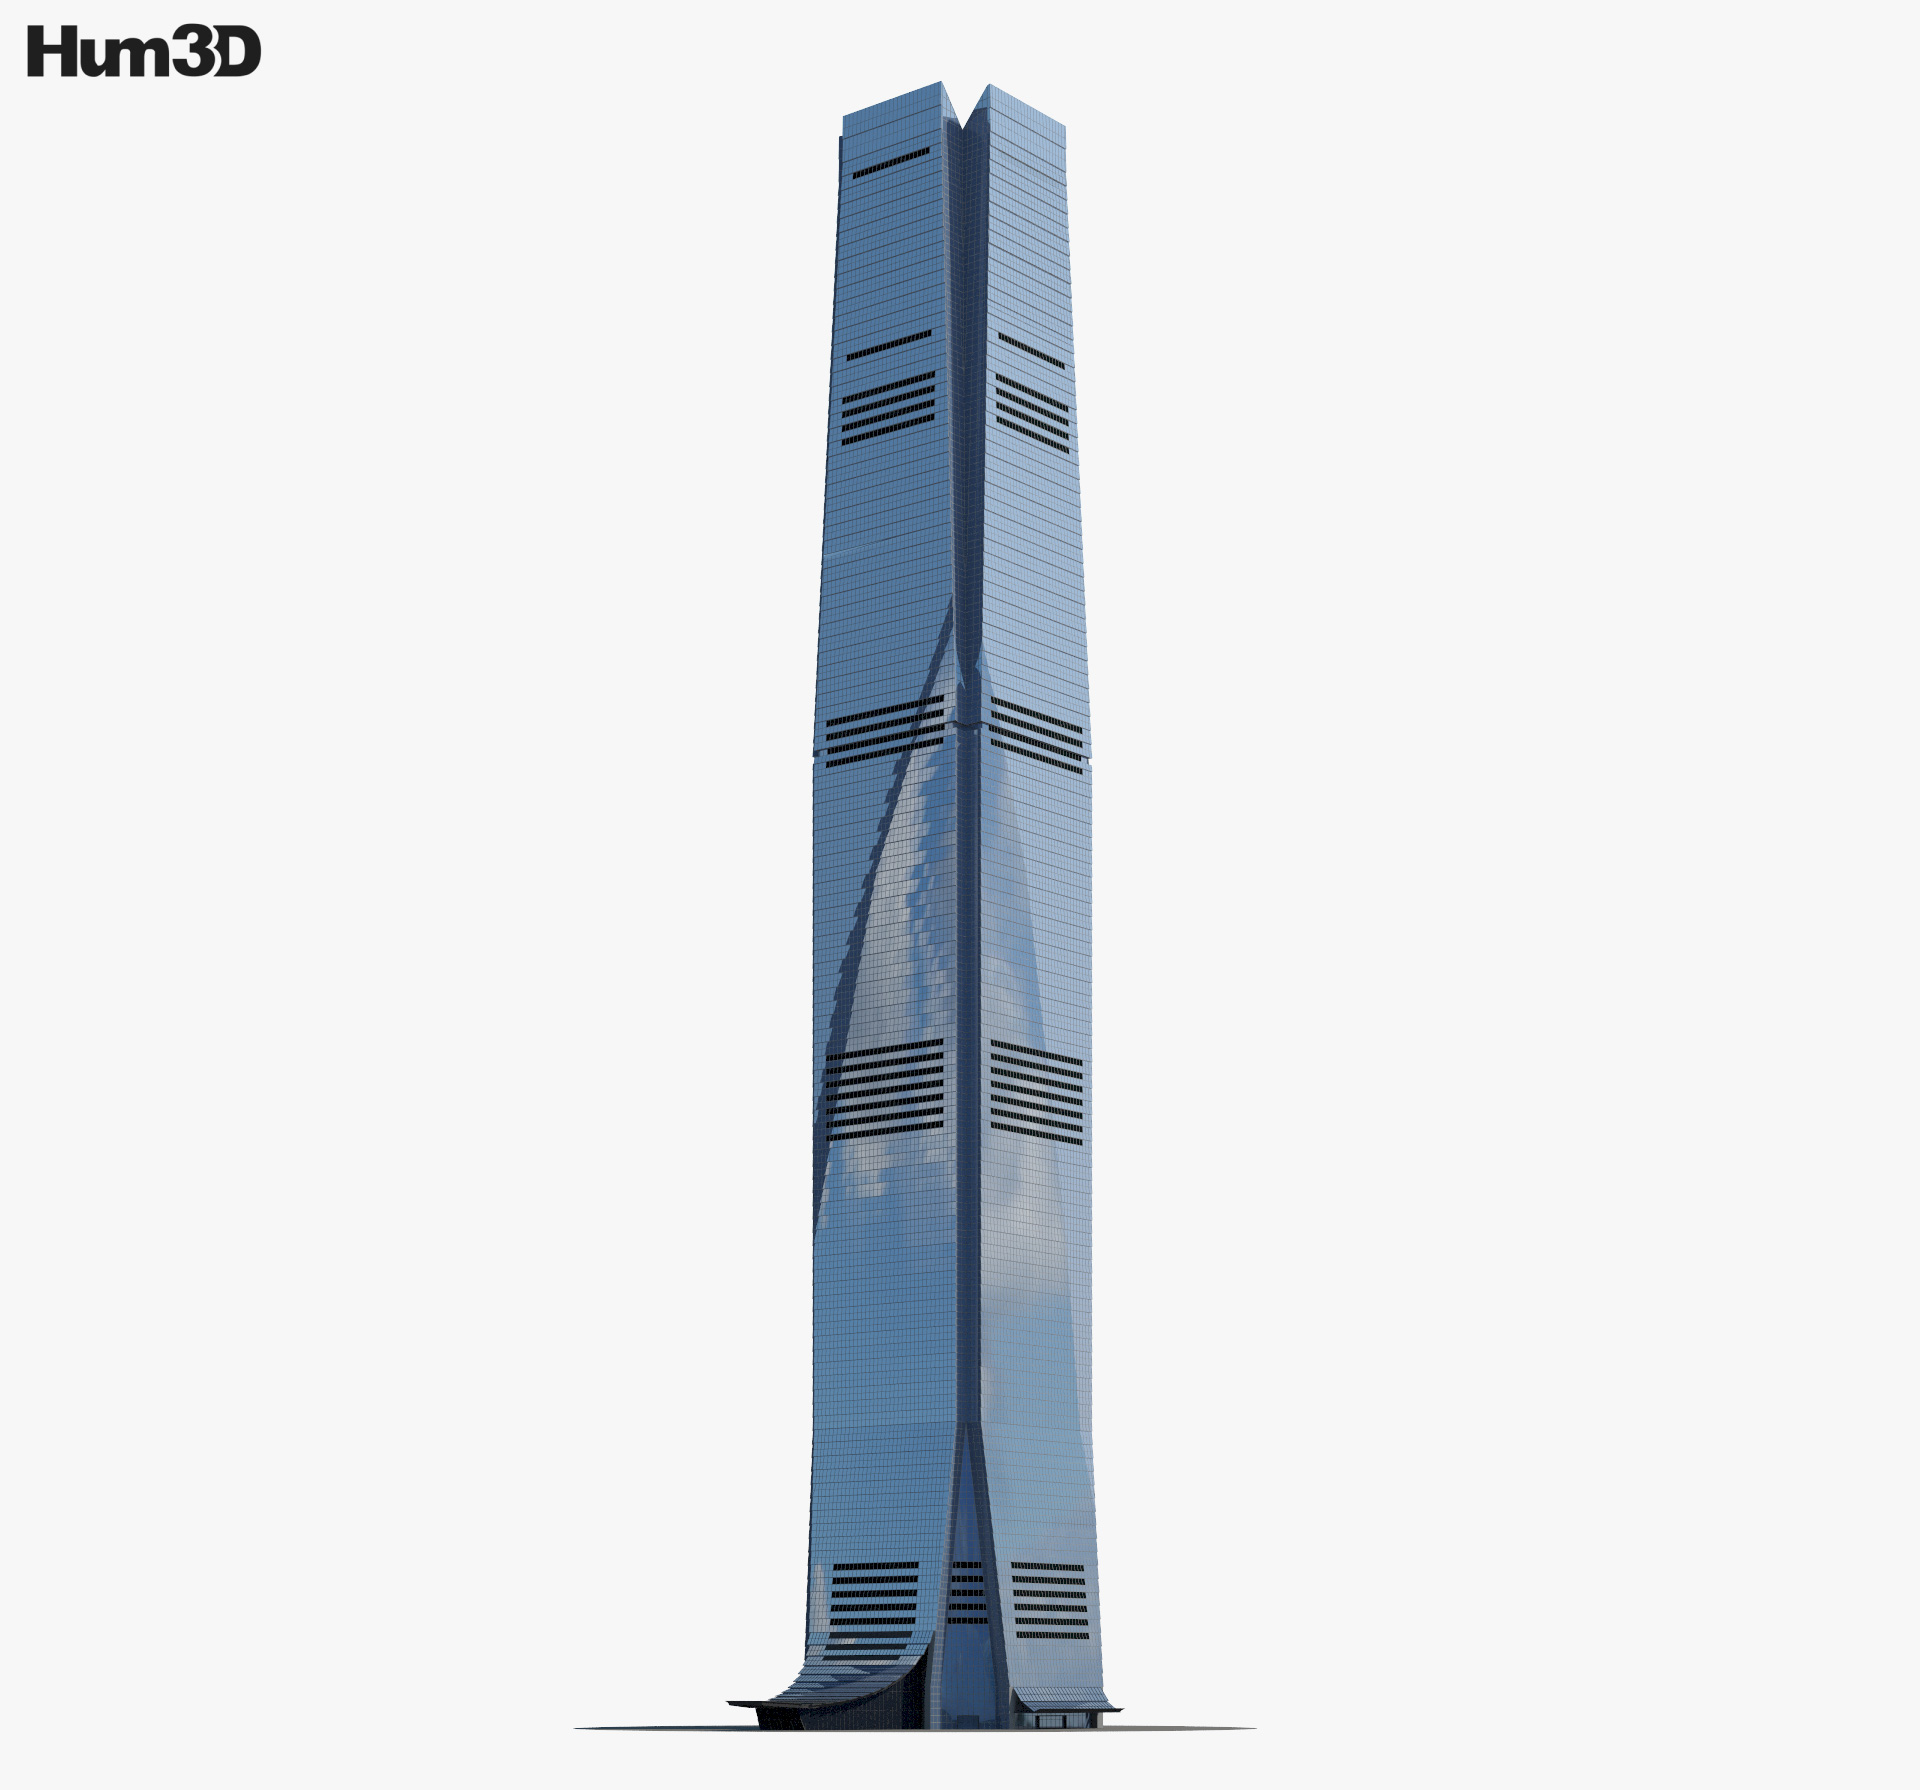 3D model of International Commerce Centre